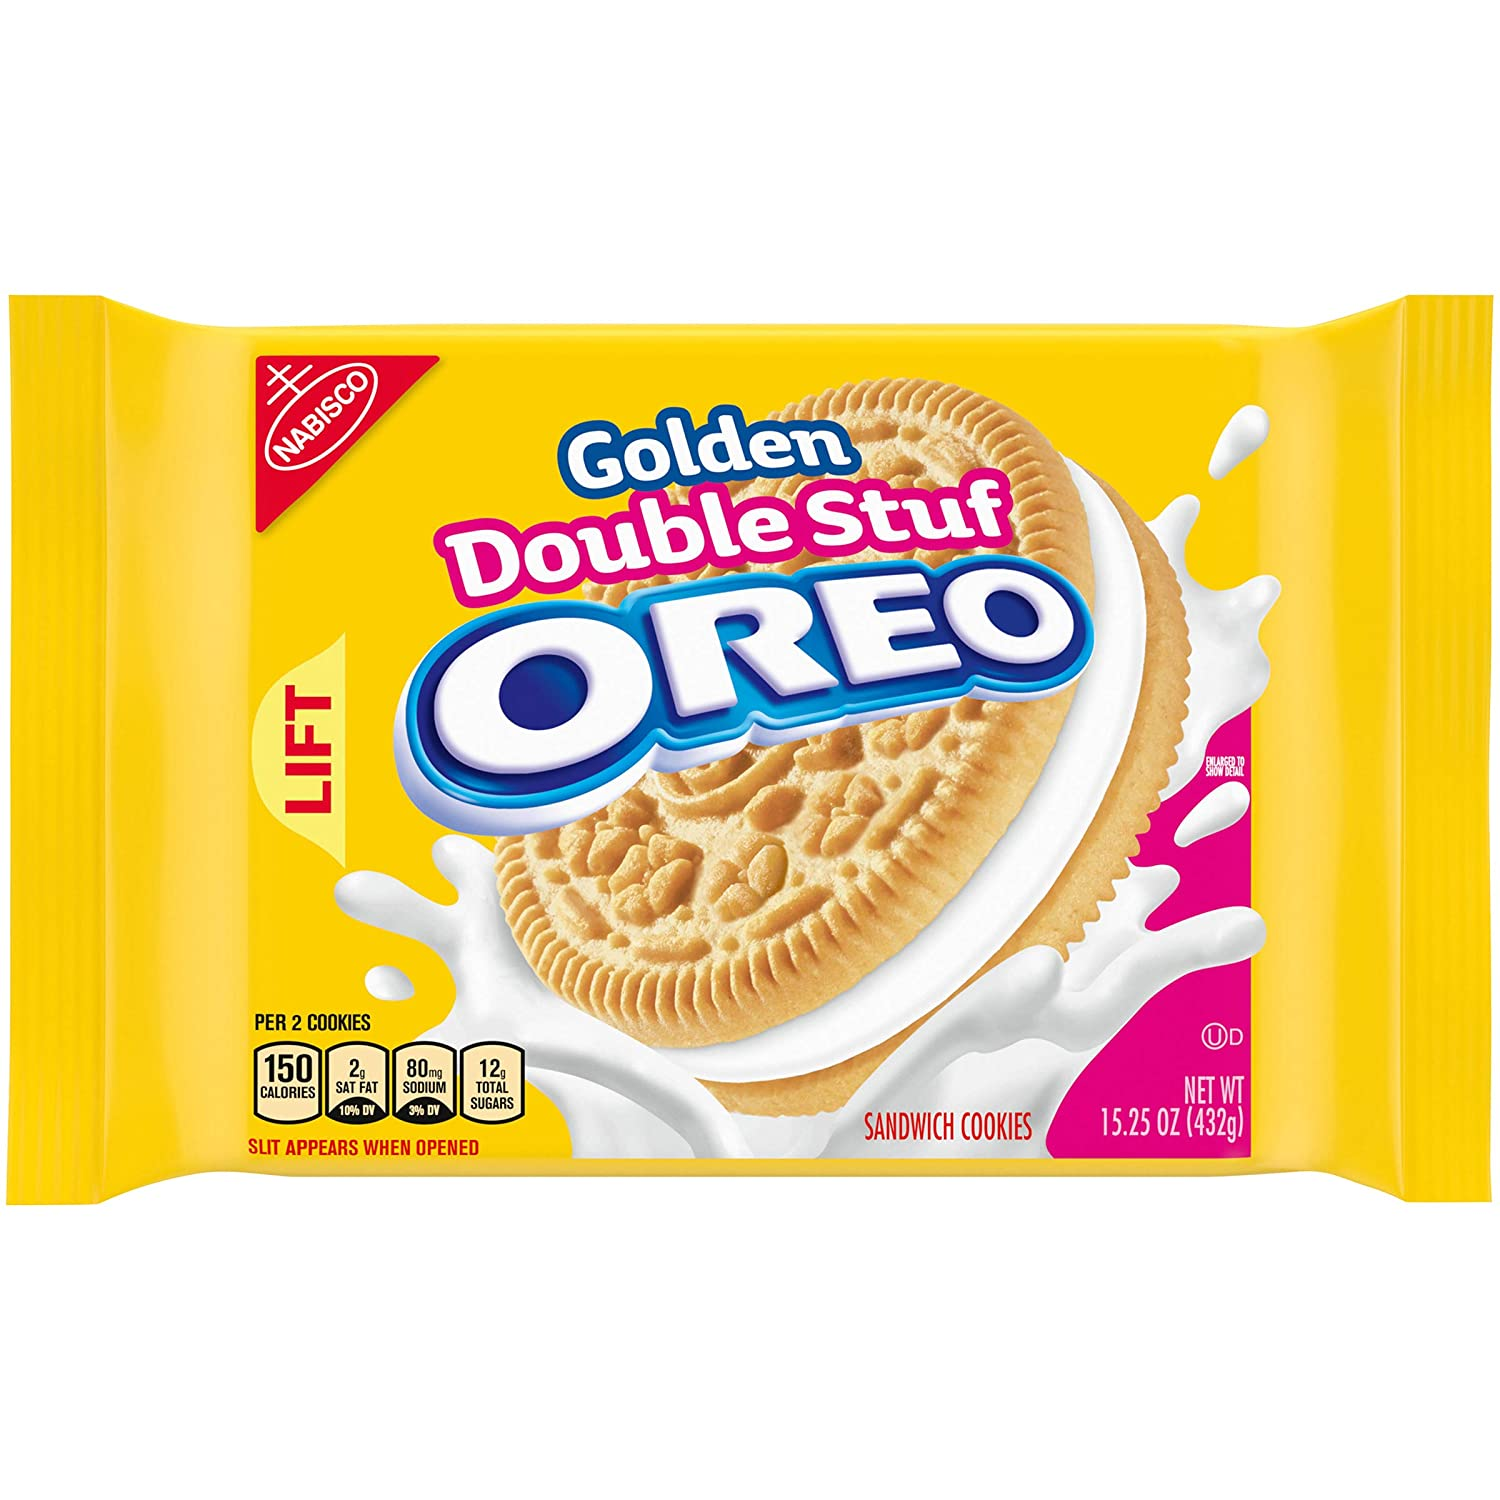 Oreo Golden double stuf